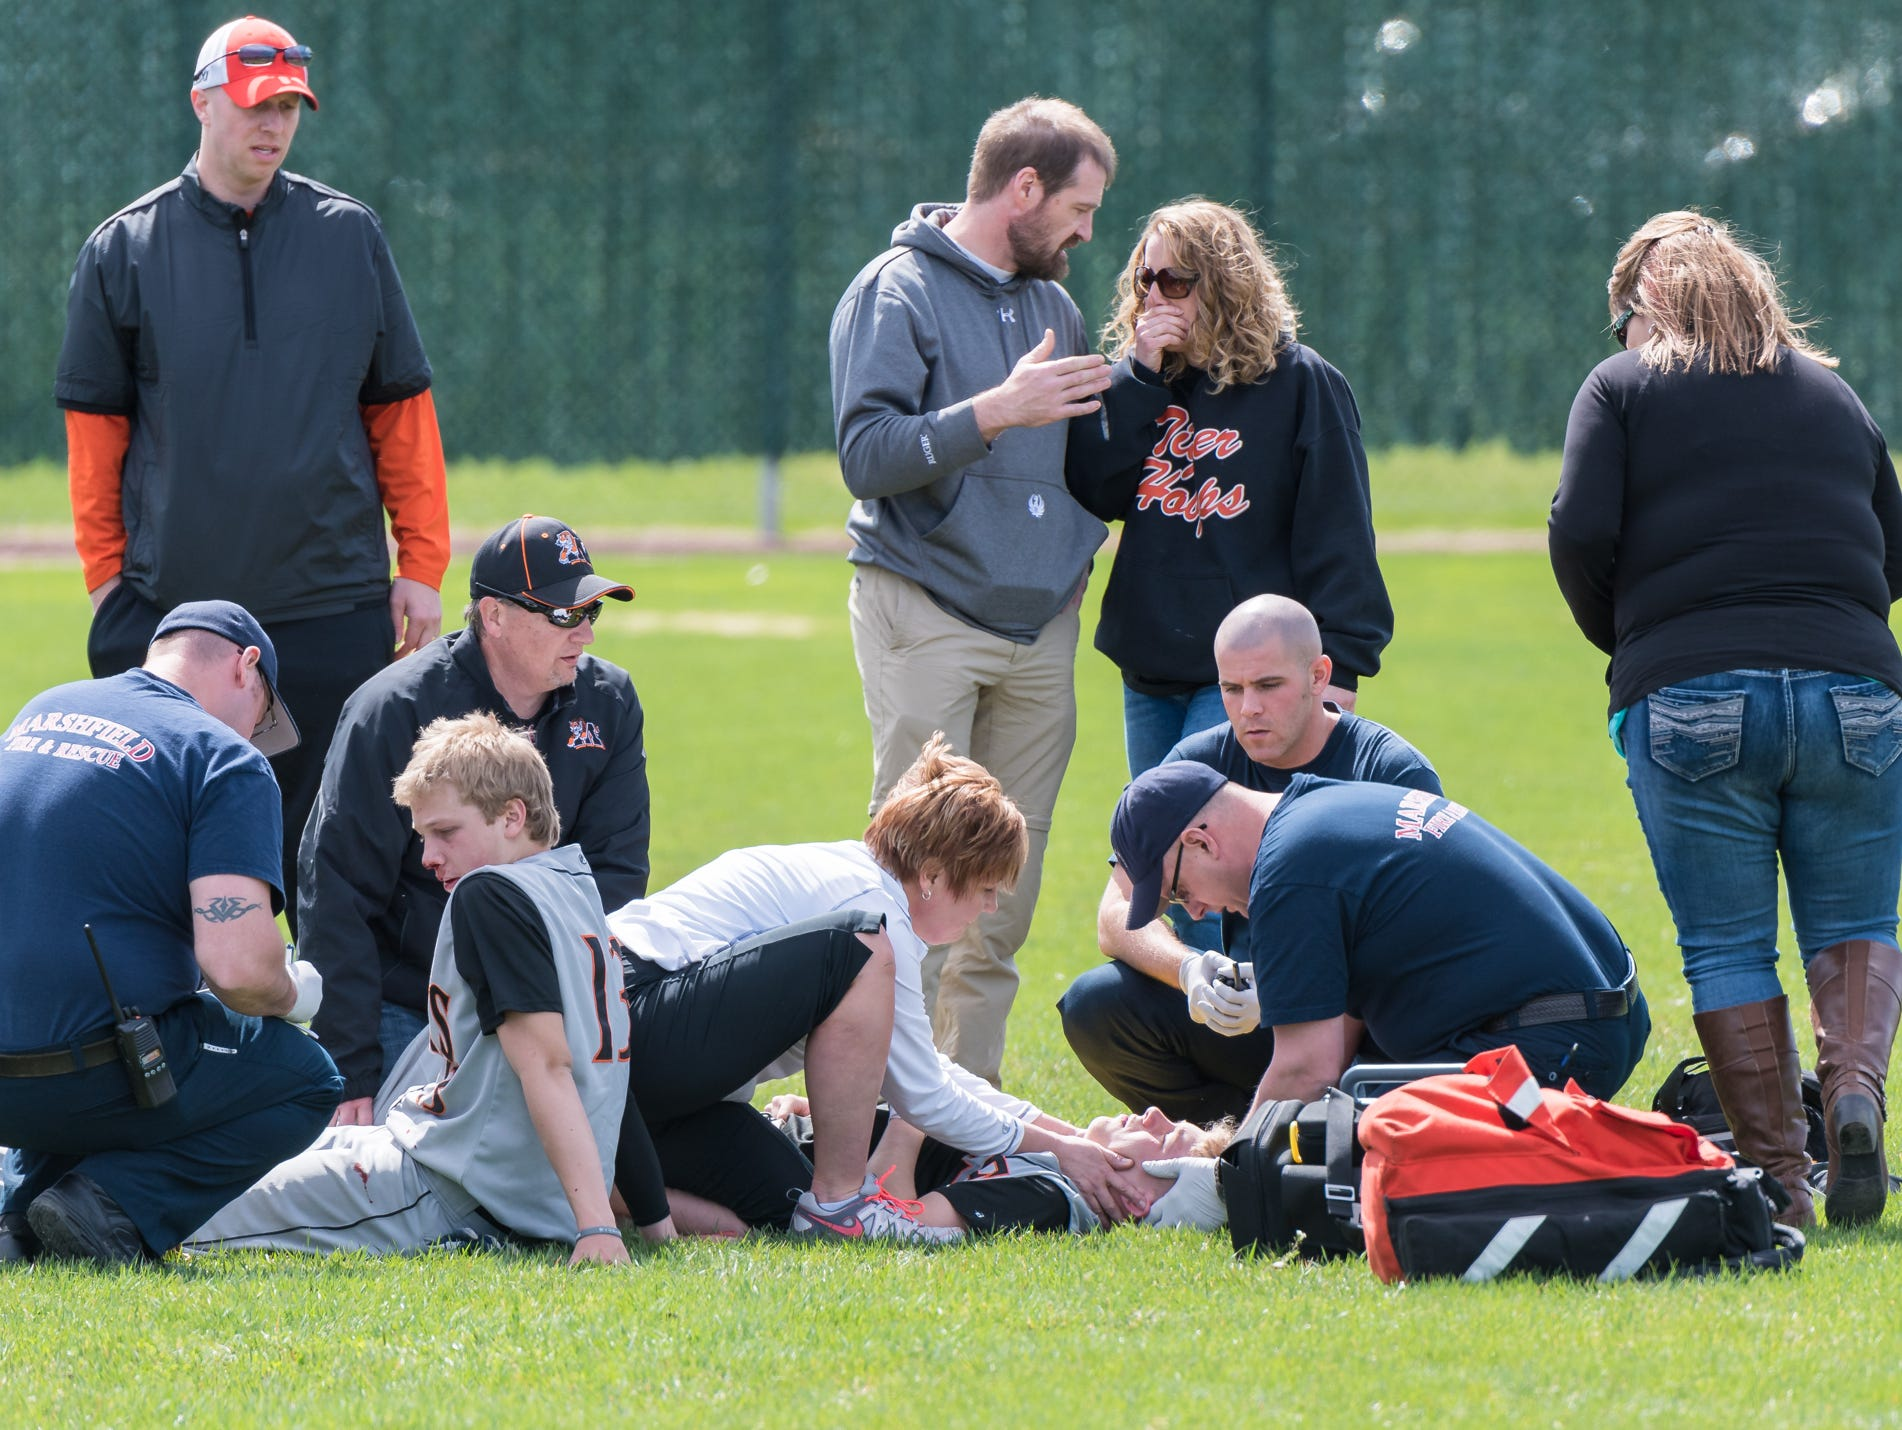 Marshfield baseball players heal from 'scary' collision ...